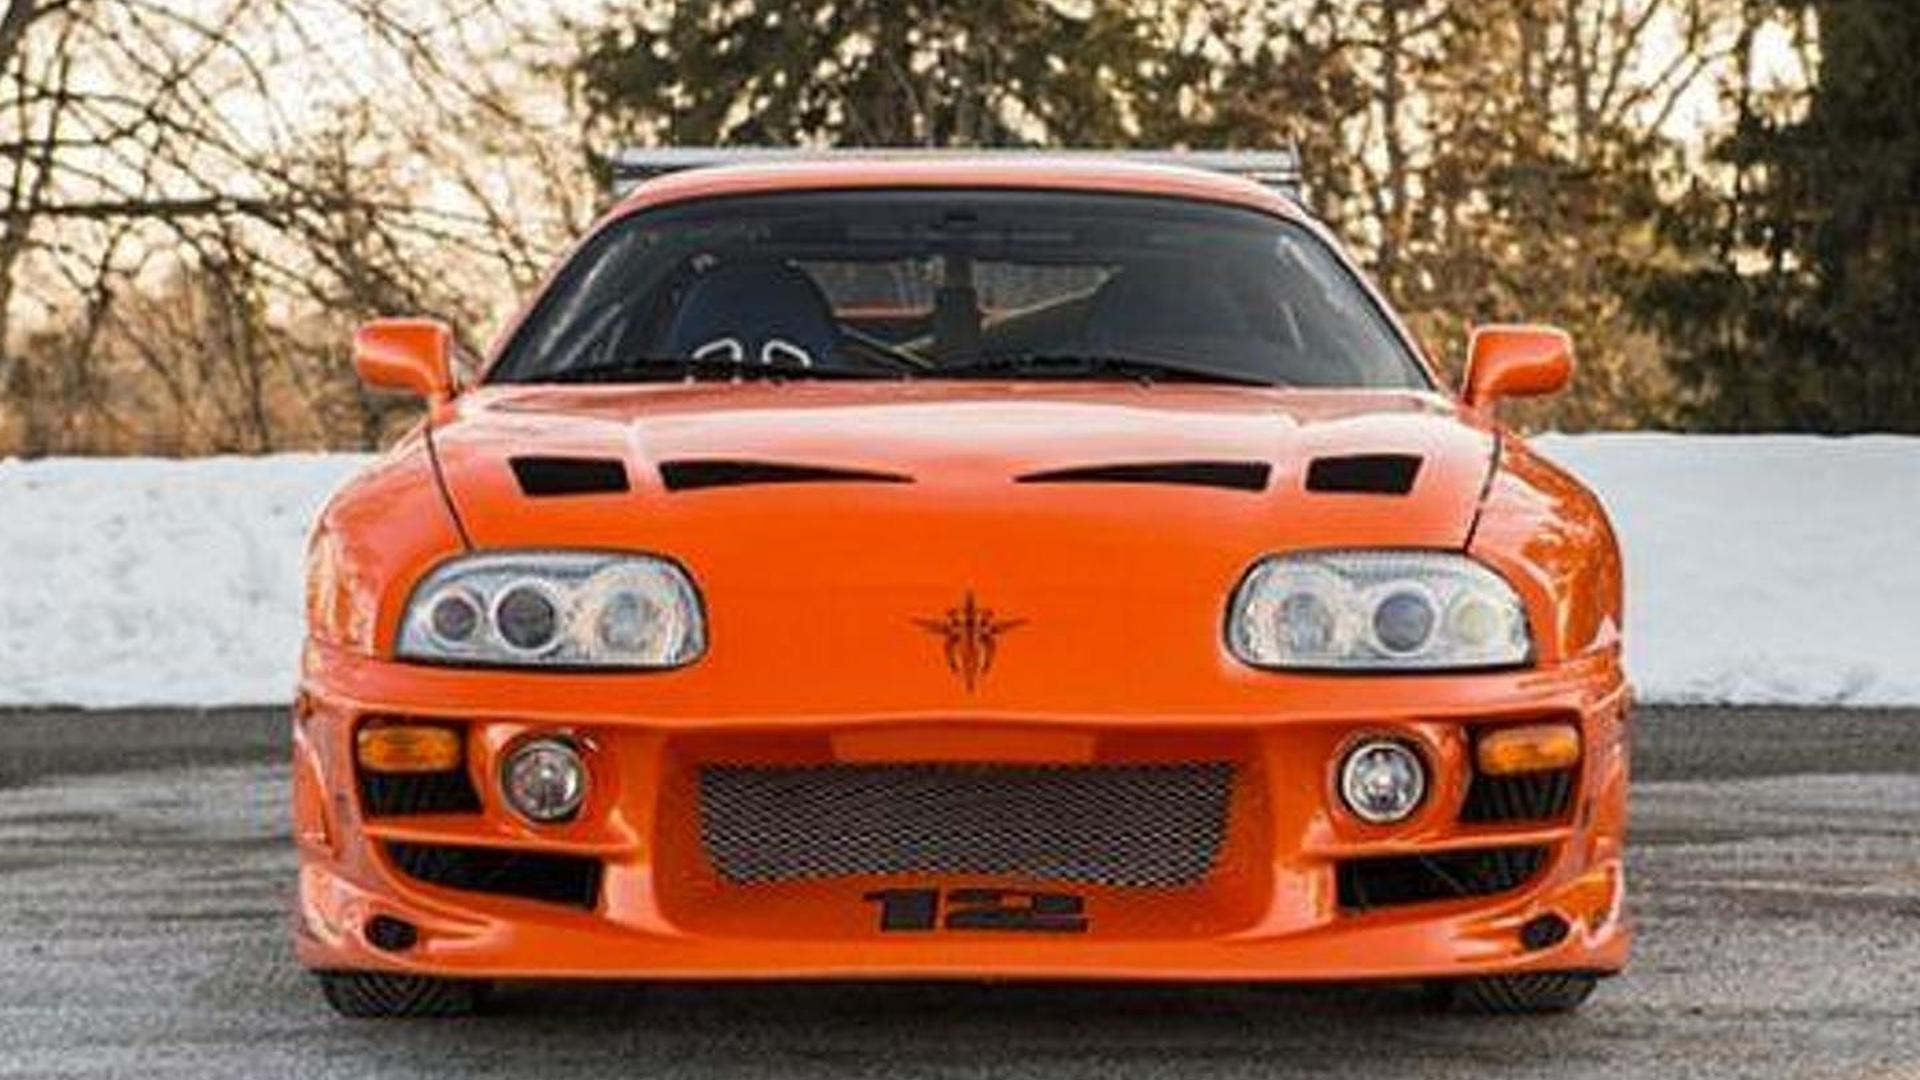 Toyota Supra From The Fast And The Furious Paul Walker S Toyota Supra From Fast And Furious Fetches 185 000